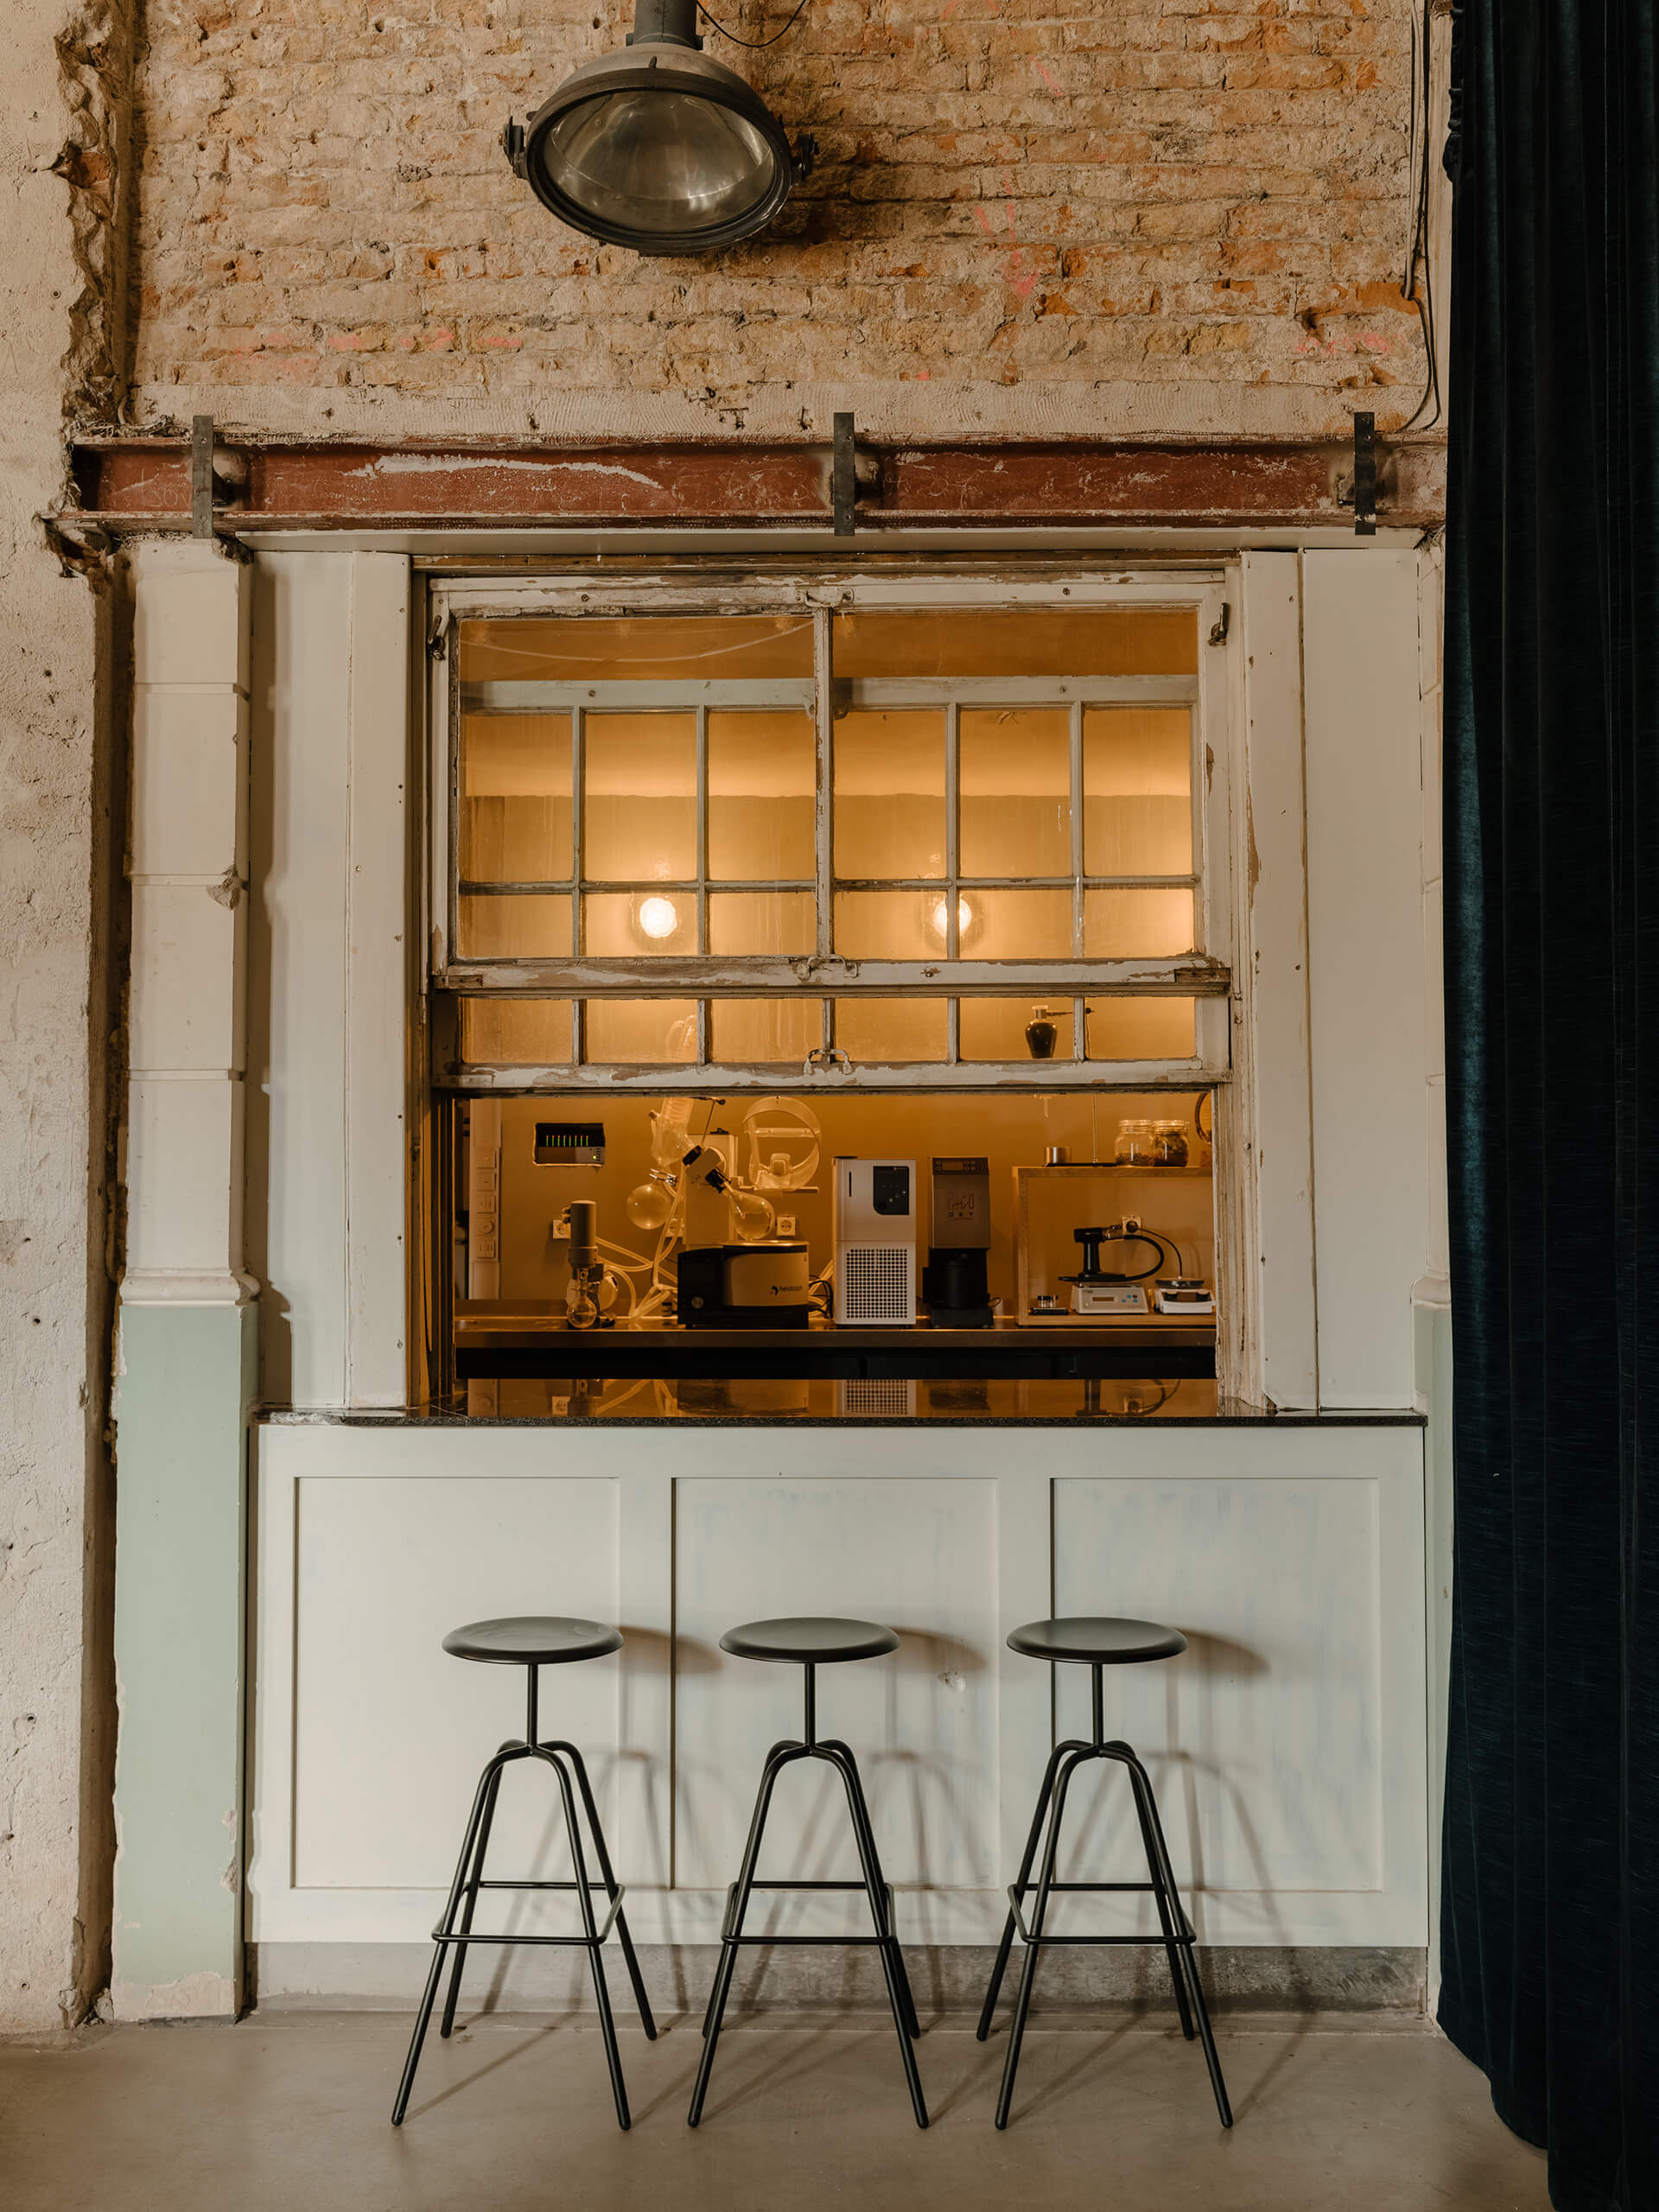 KINK's in-house laboratory | KINK Bar and Restaurant by Oliver Mansaray and Daniel Scheppan | STIRworld